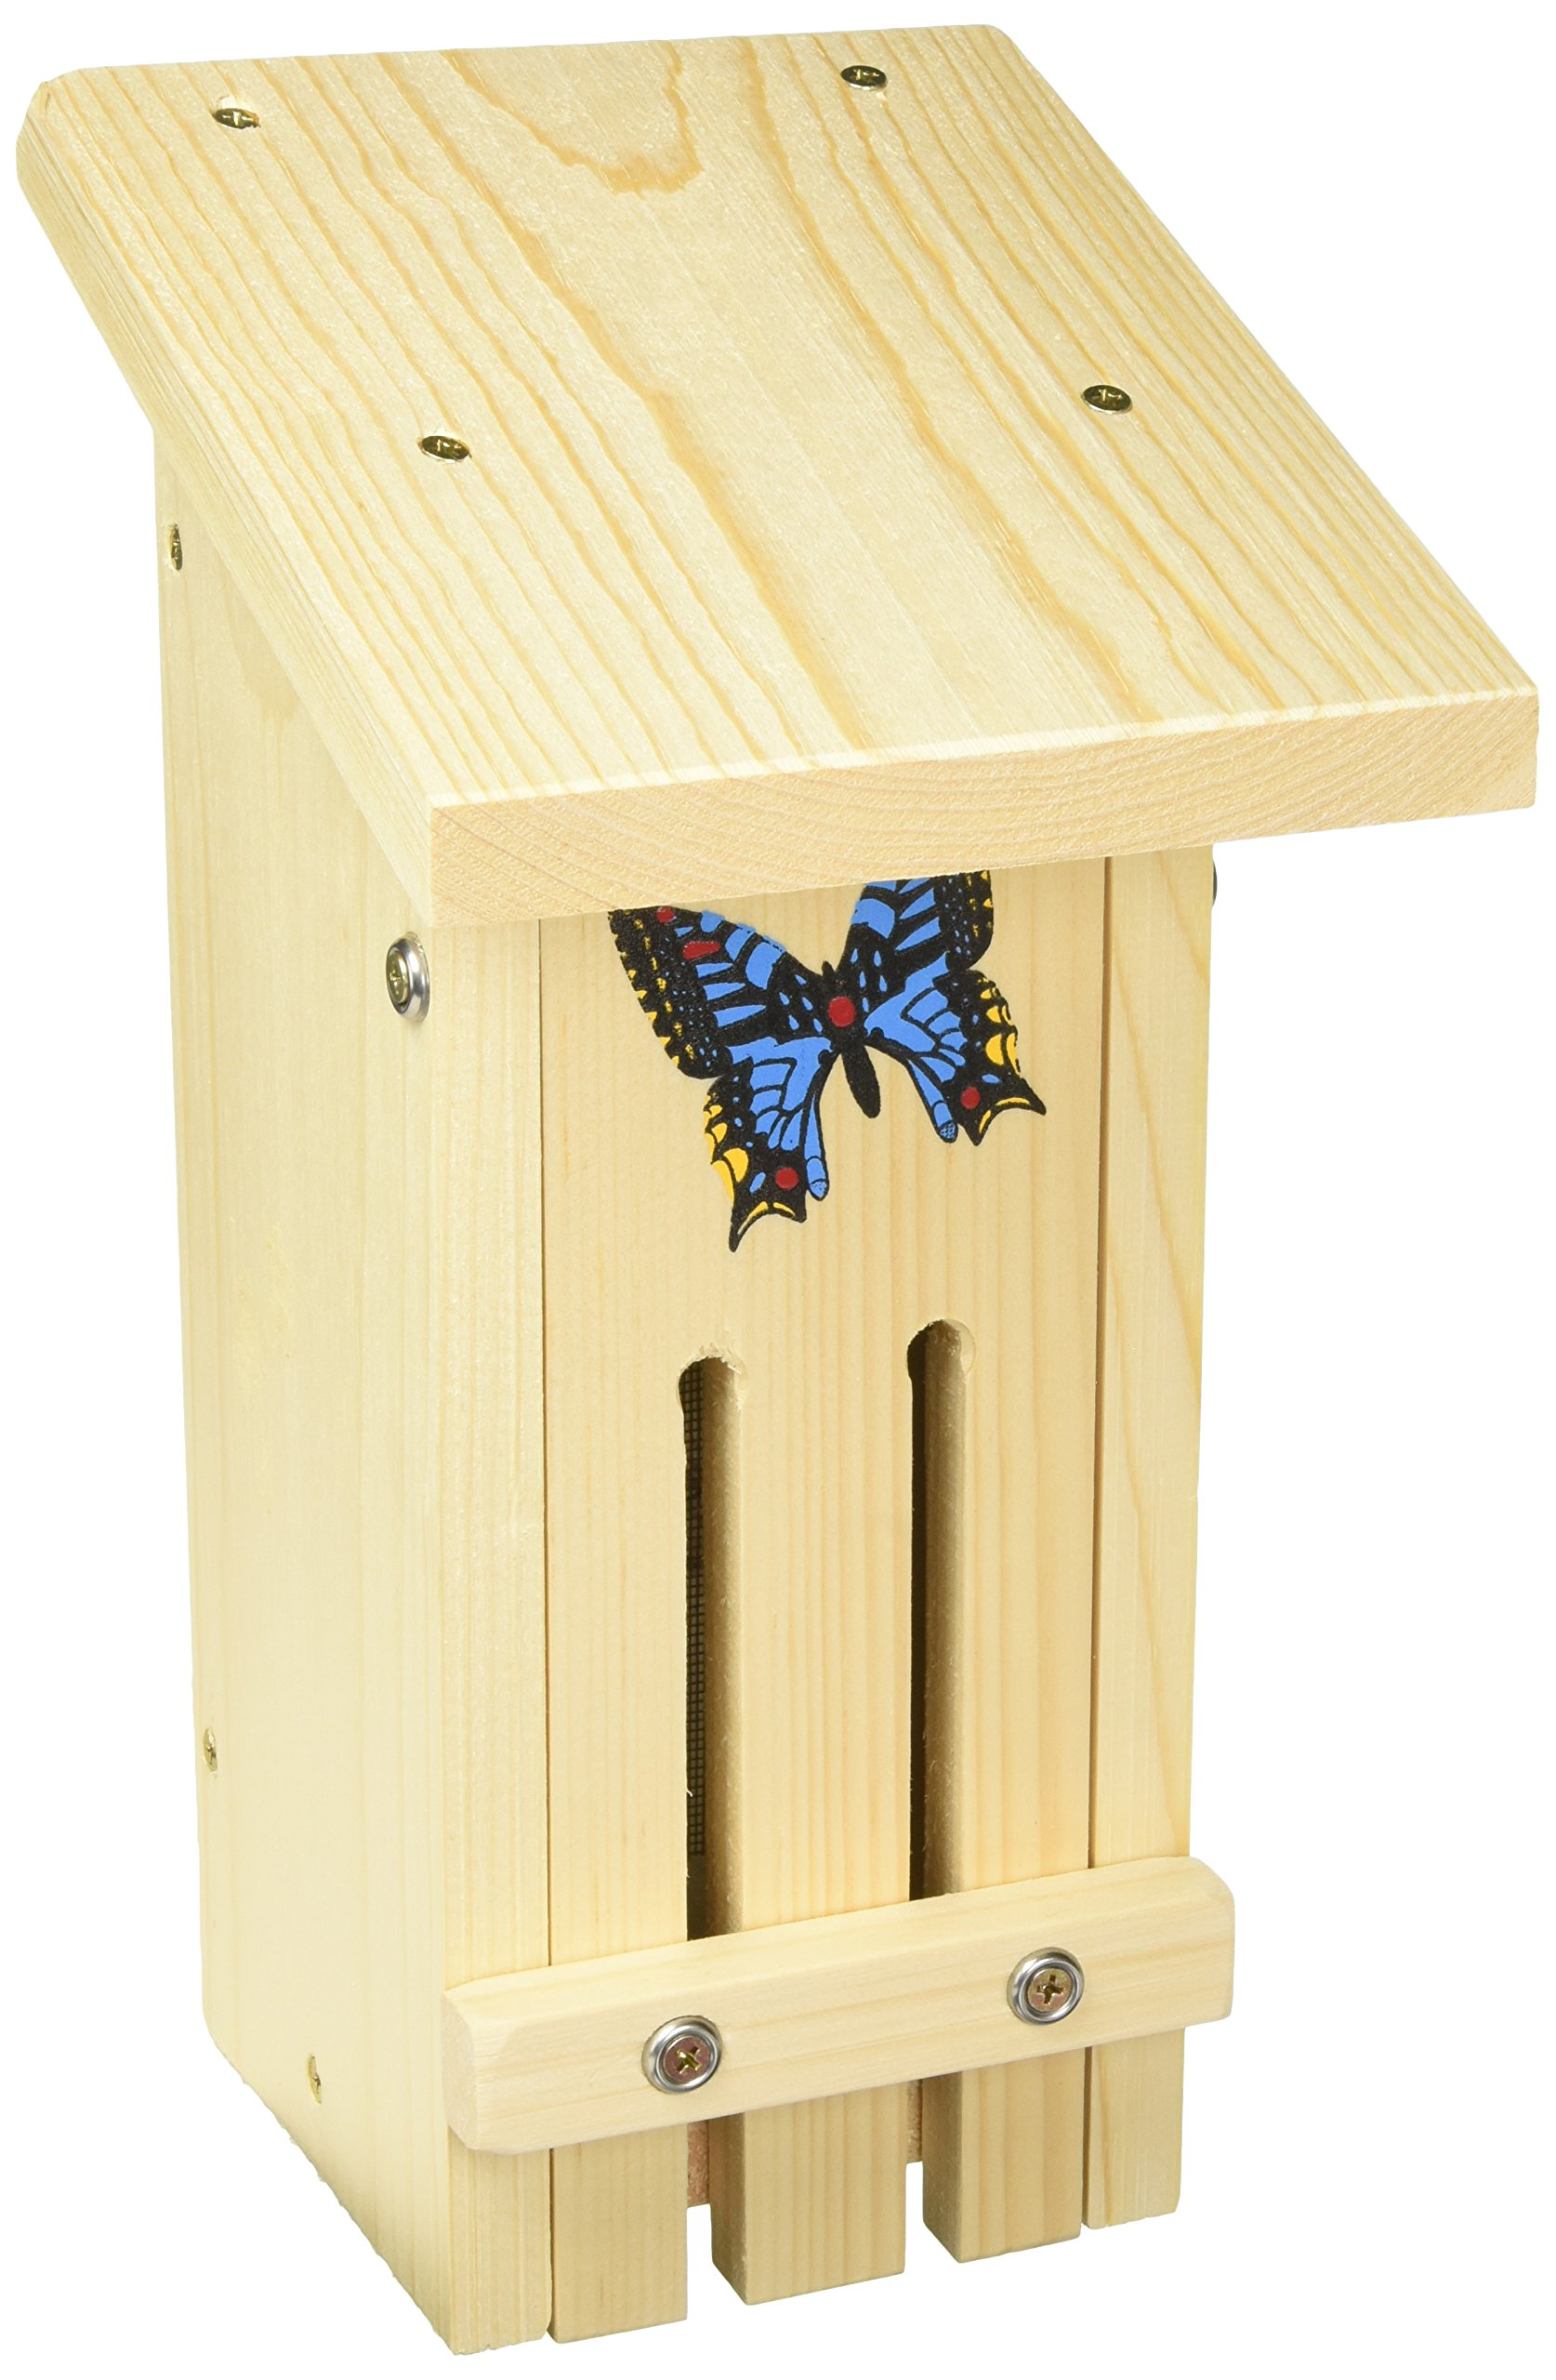 Stovall Products 14H Wood Small Butterfly Habitat